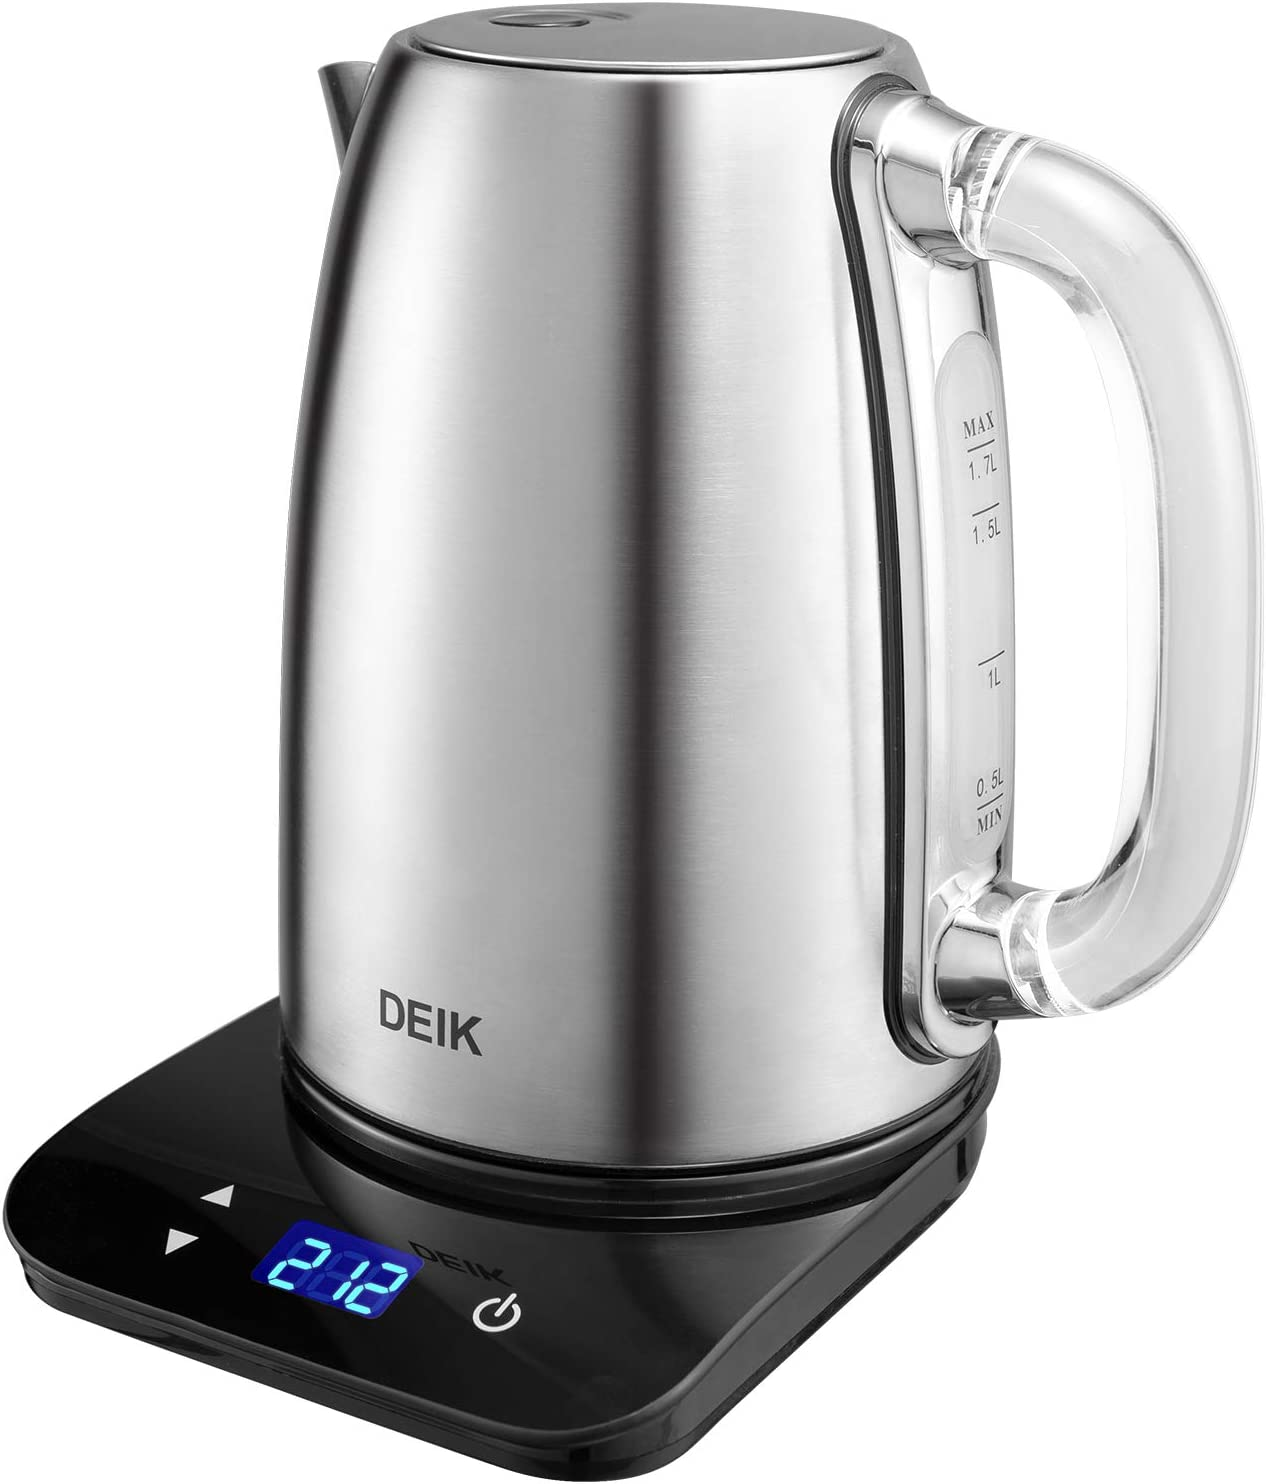 DEIK Electric Kettle, 2019 Upgrade Version 1.7L Temperature Control Tea Kettle with Digital LCD Base, Food Grade 304 Stainless Steel BPA-Free, 1500W Rapid Boil, Elegant Glass Handle for Safe Concept